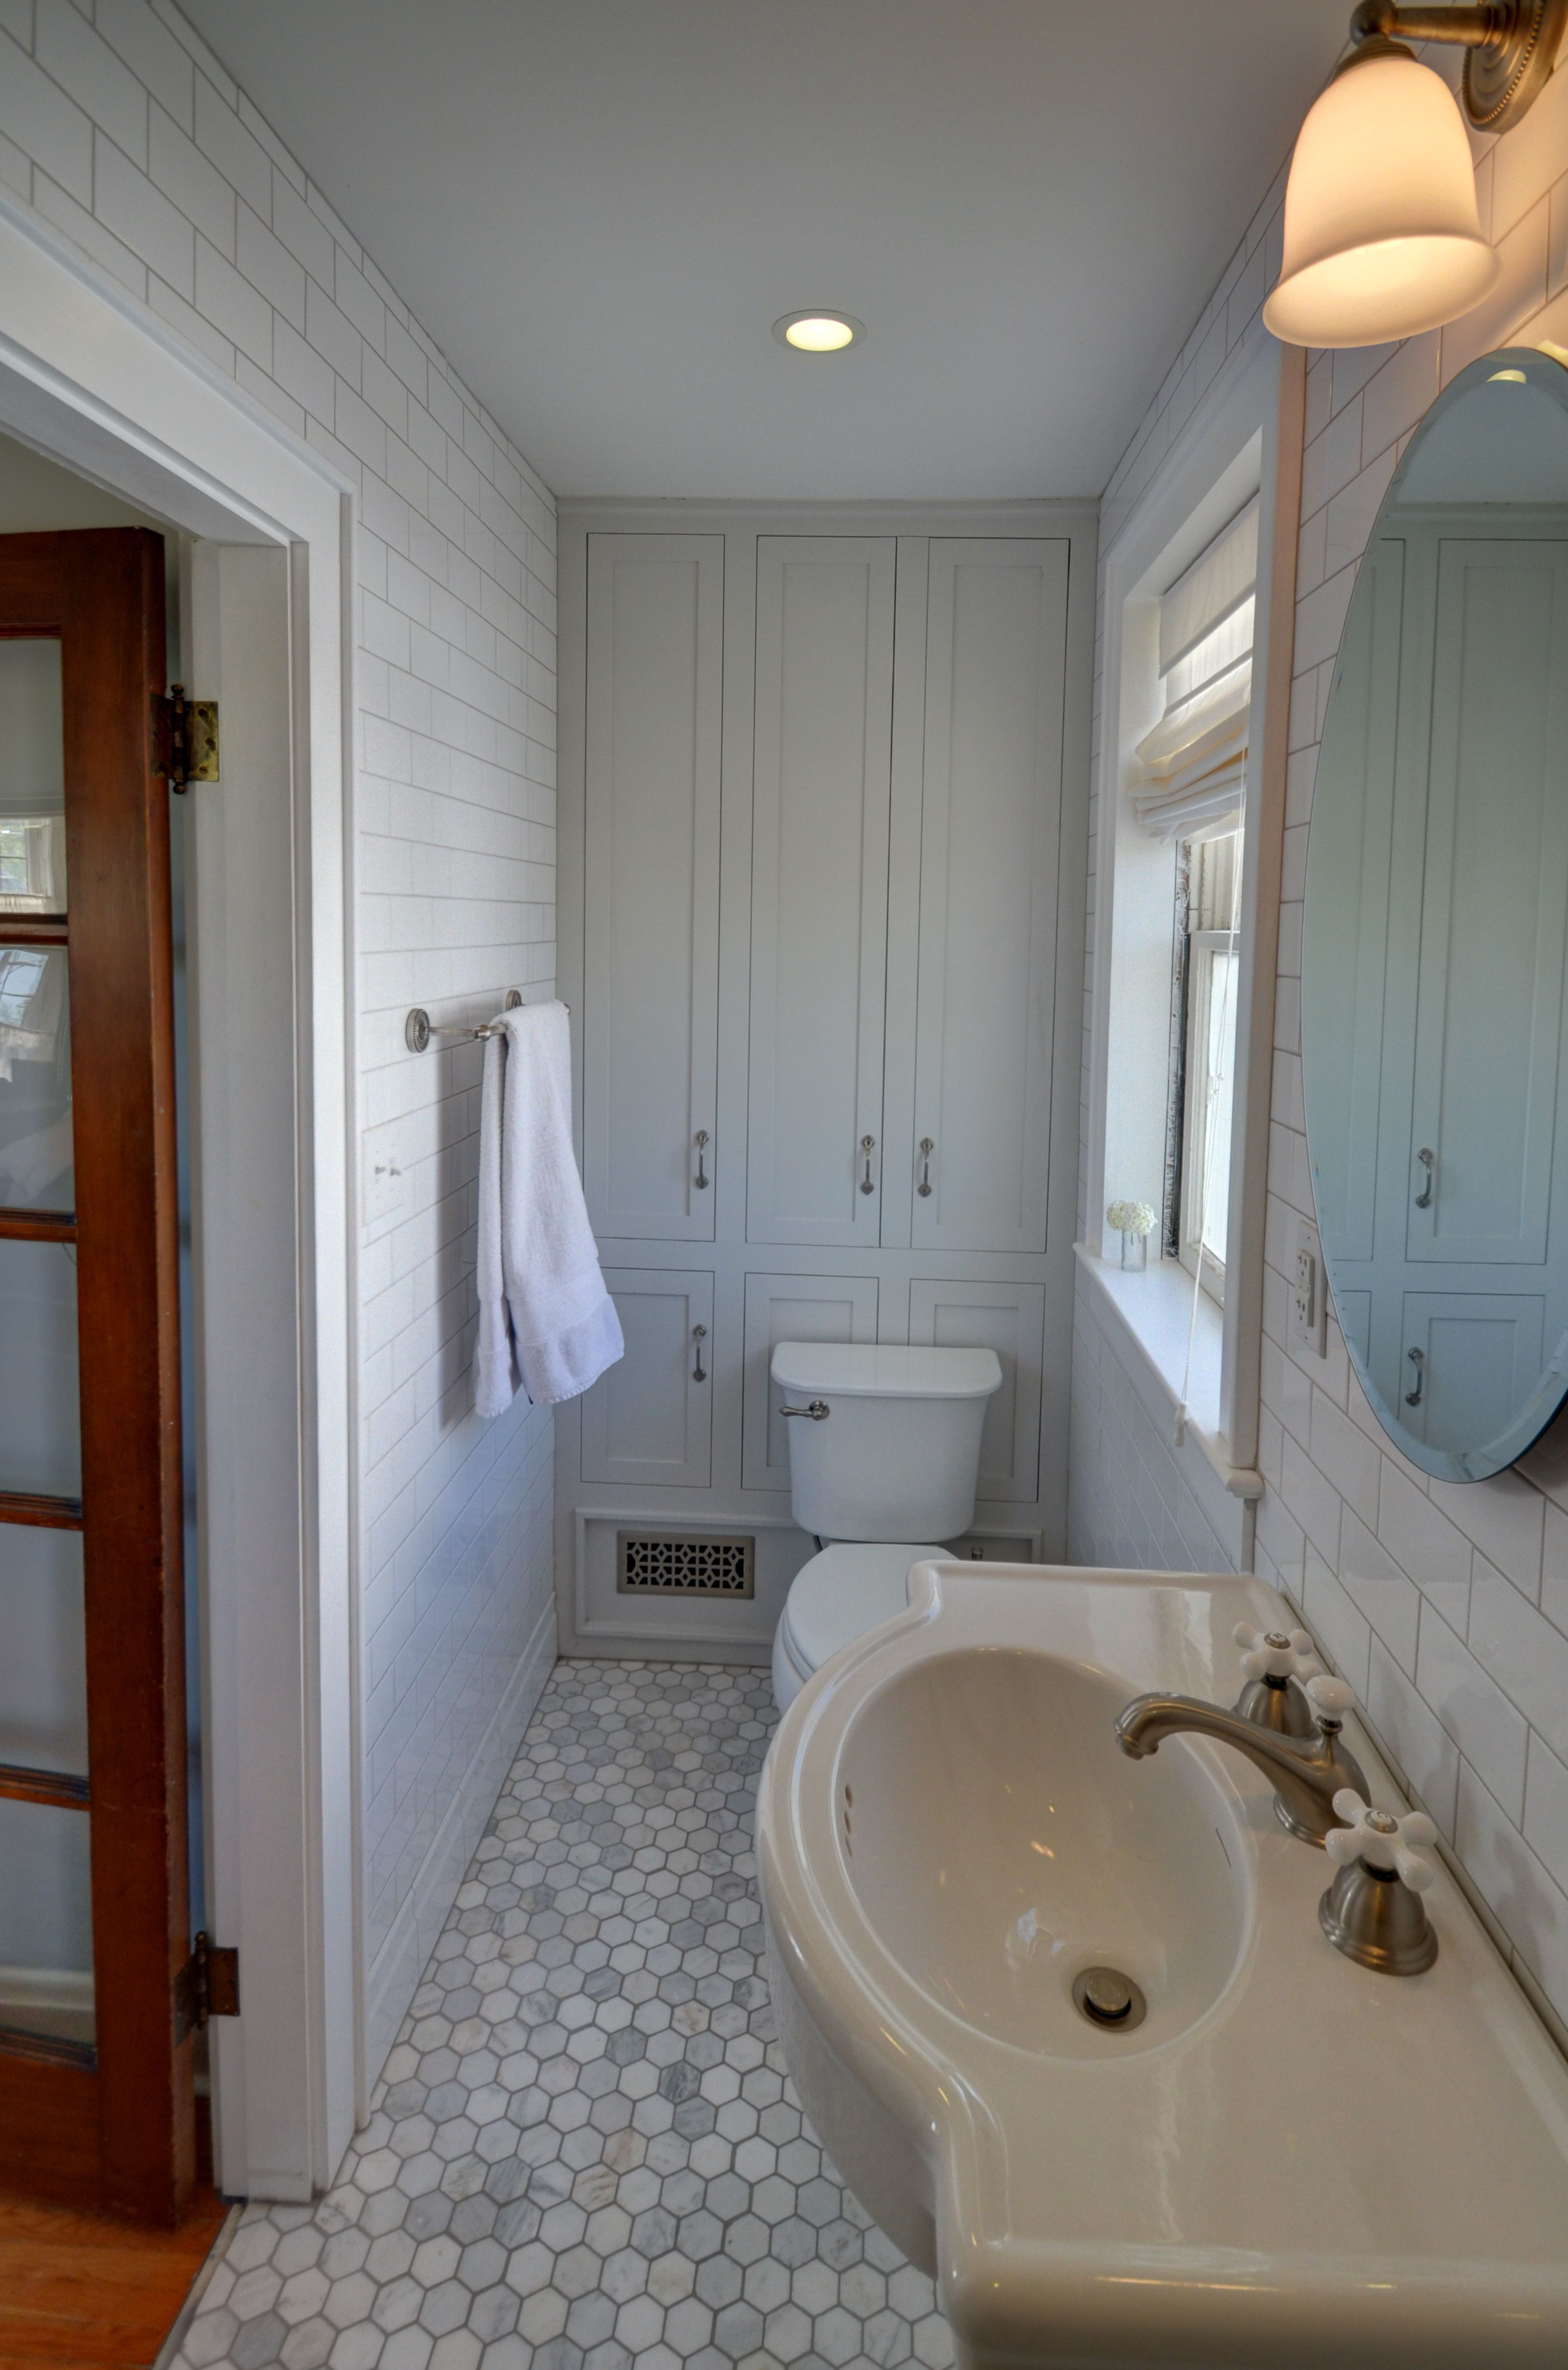 Built Ins Were Created Above A Sloped Floor And Are The Same Color